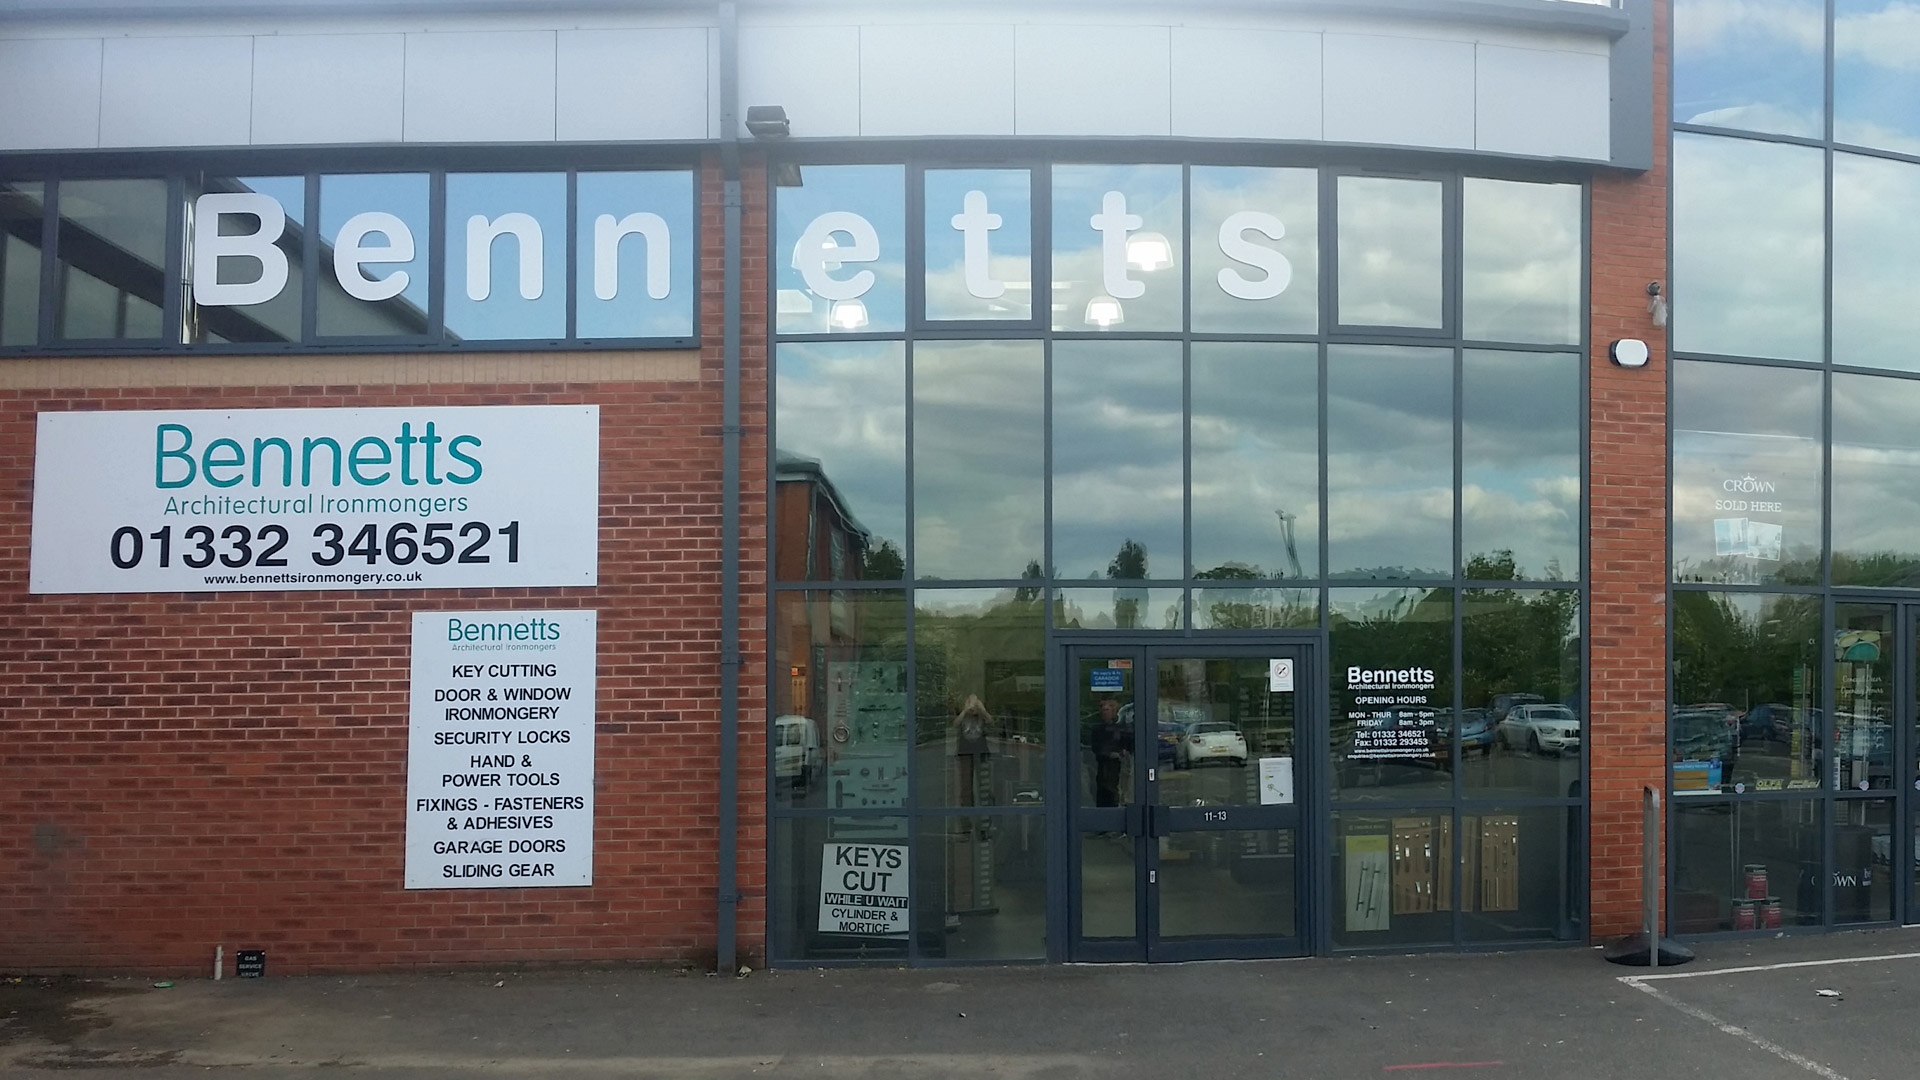 Bennetts Architectural Ironmongery